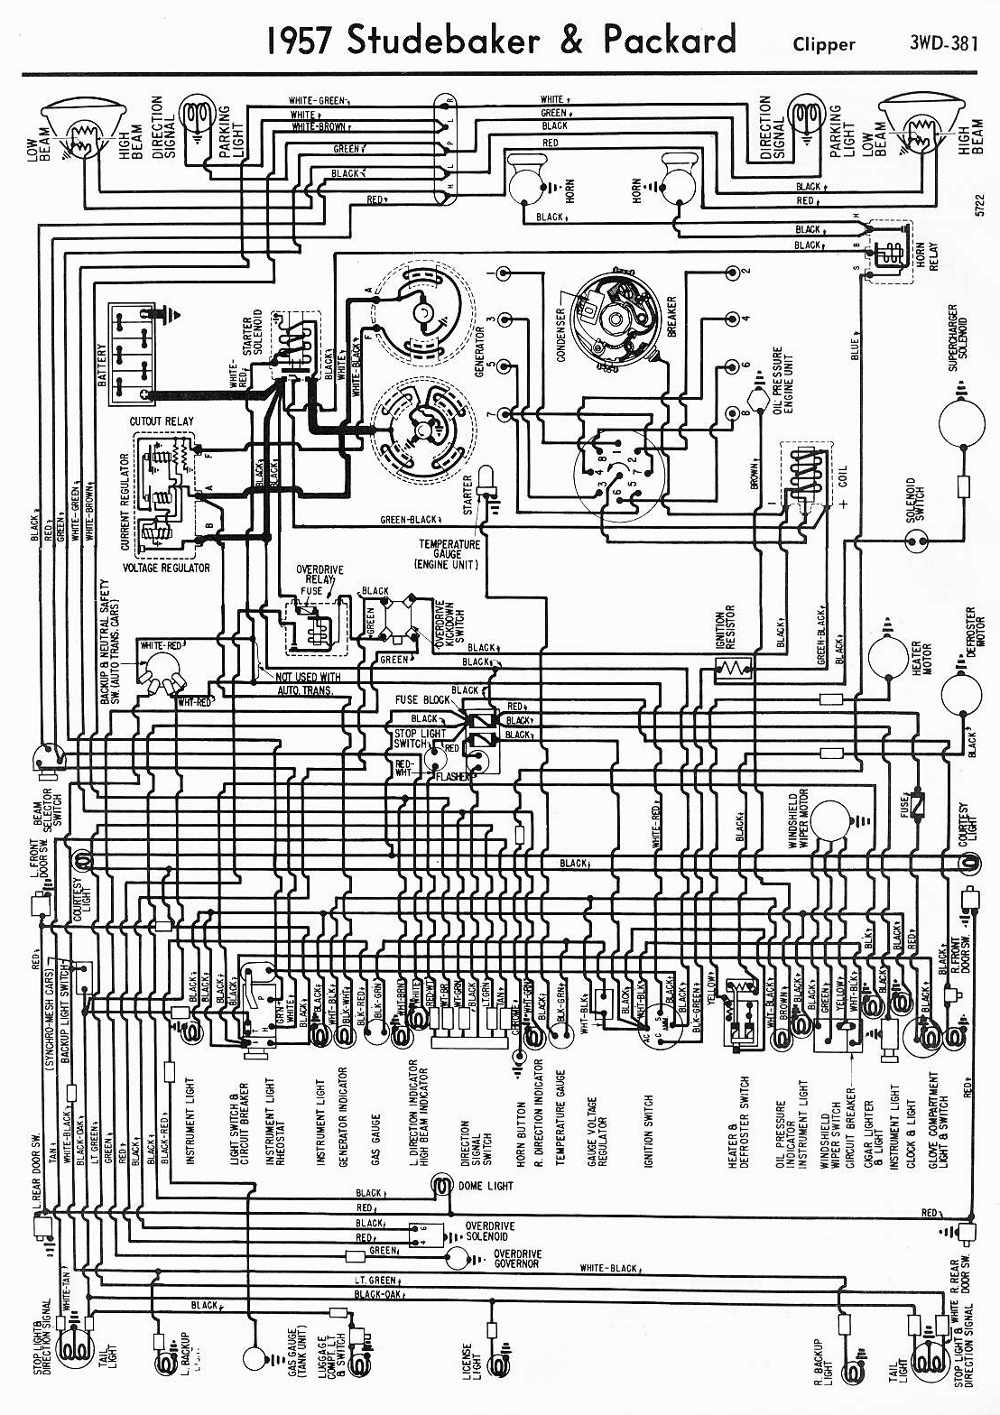 hight resolution of 1948 packard wiring diagram wiring diagram pictures u2022 rh mapavick co uk 1959 studebaker pickup wiring